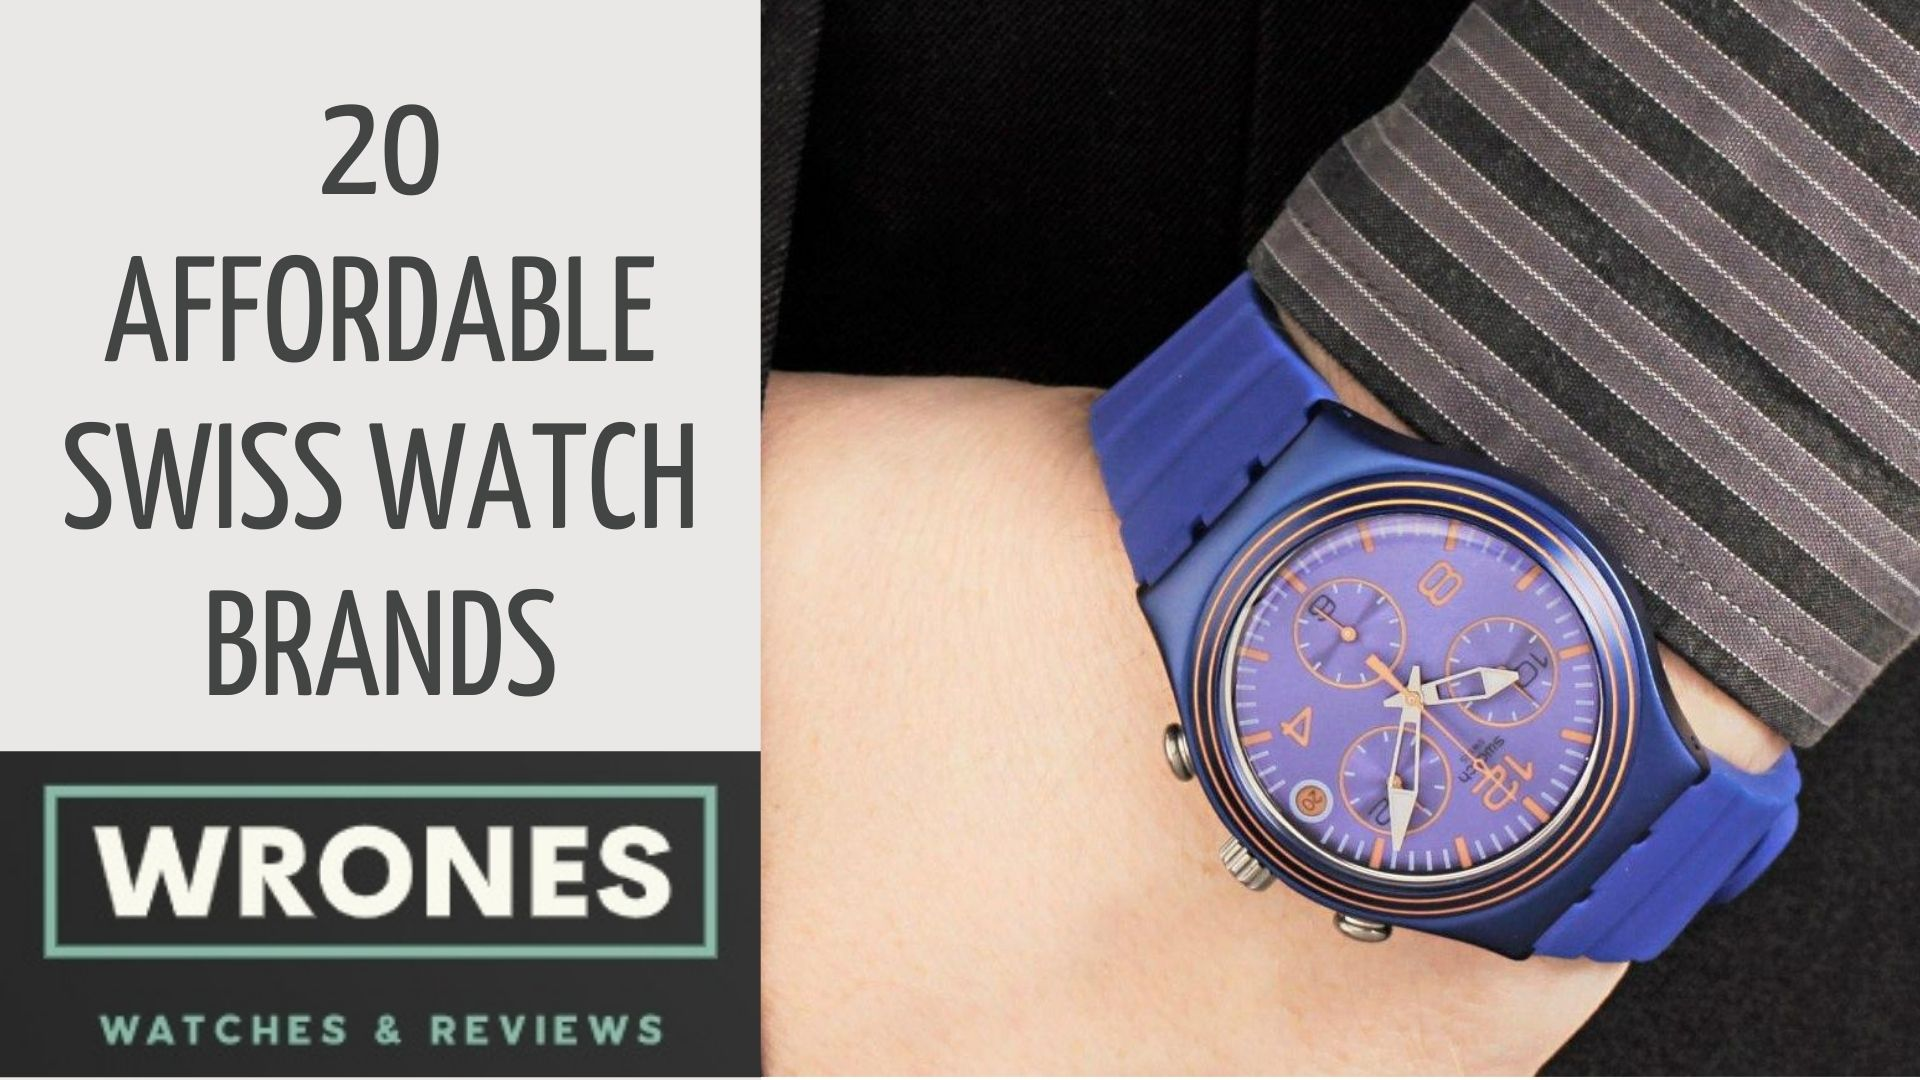 20 Affordable Swiss Watch Brands wrones